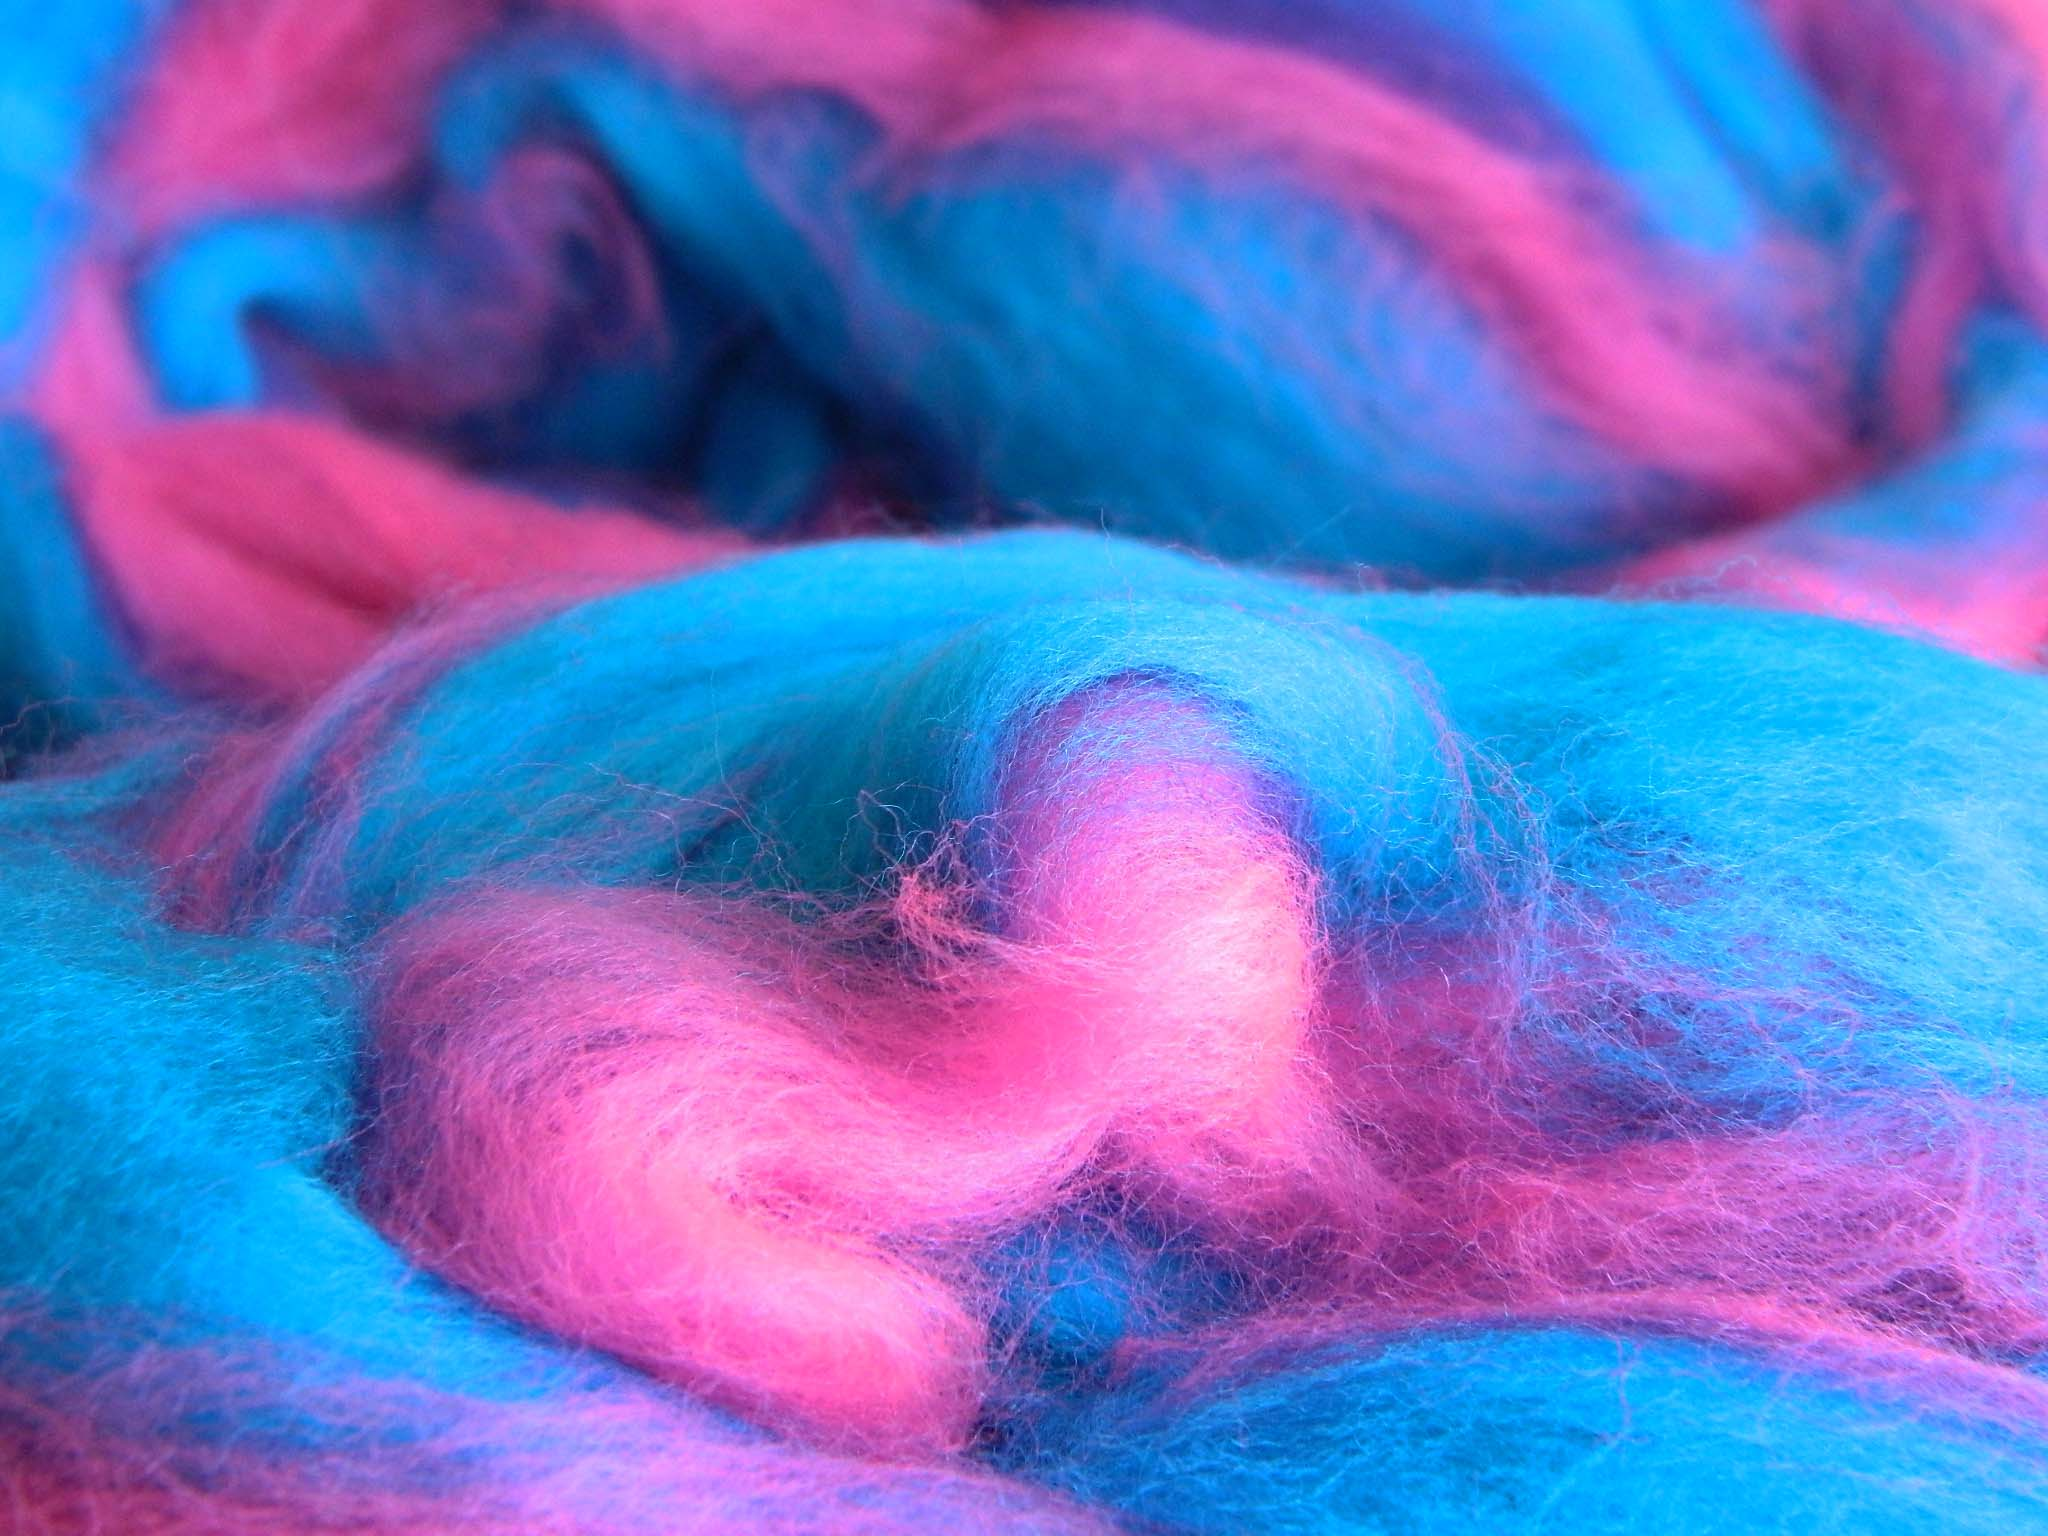 blue and pink cotton candy widescreen computer background 1161